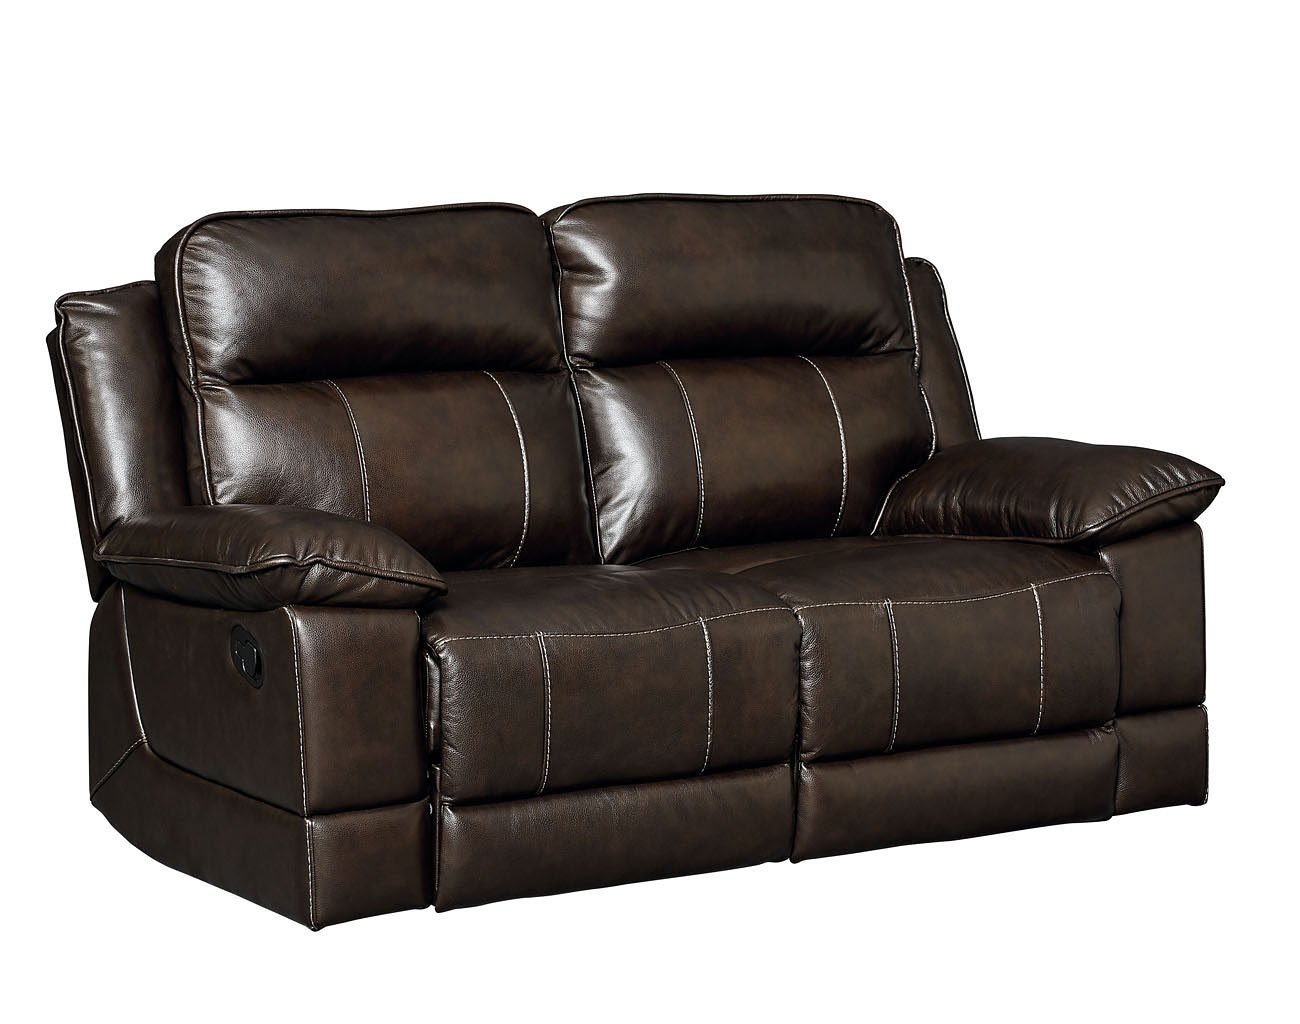 Sequoia Reclining Living Room Set Standard Furniture ... on Sequoia Outdoor Living id=95876